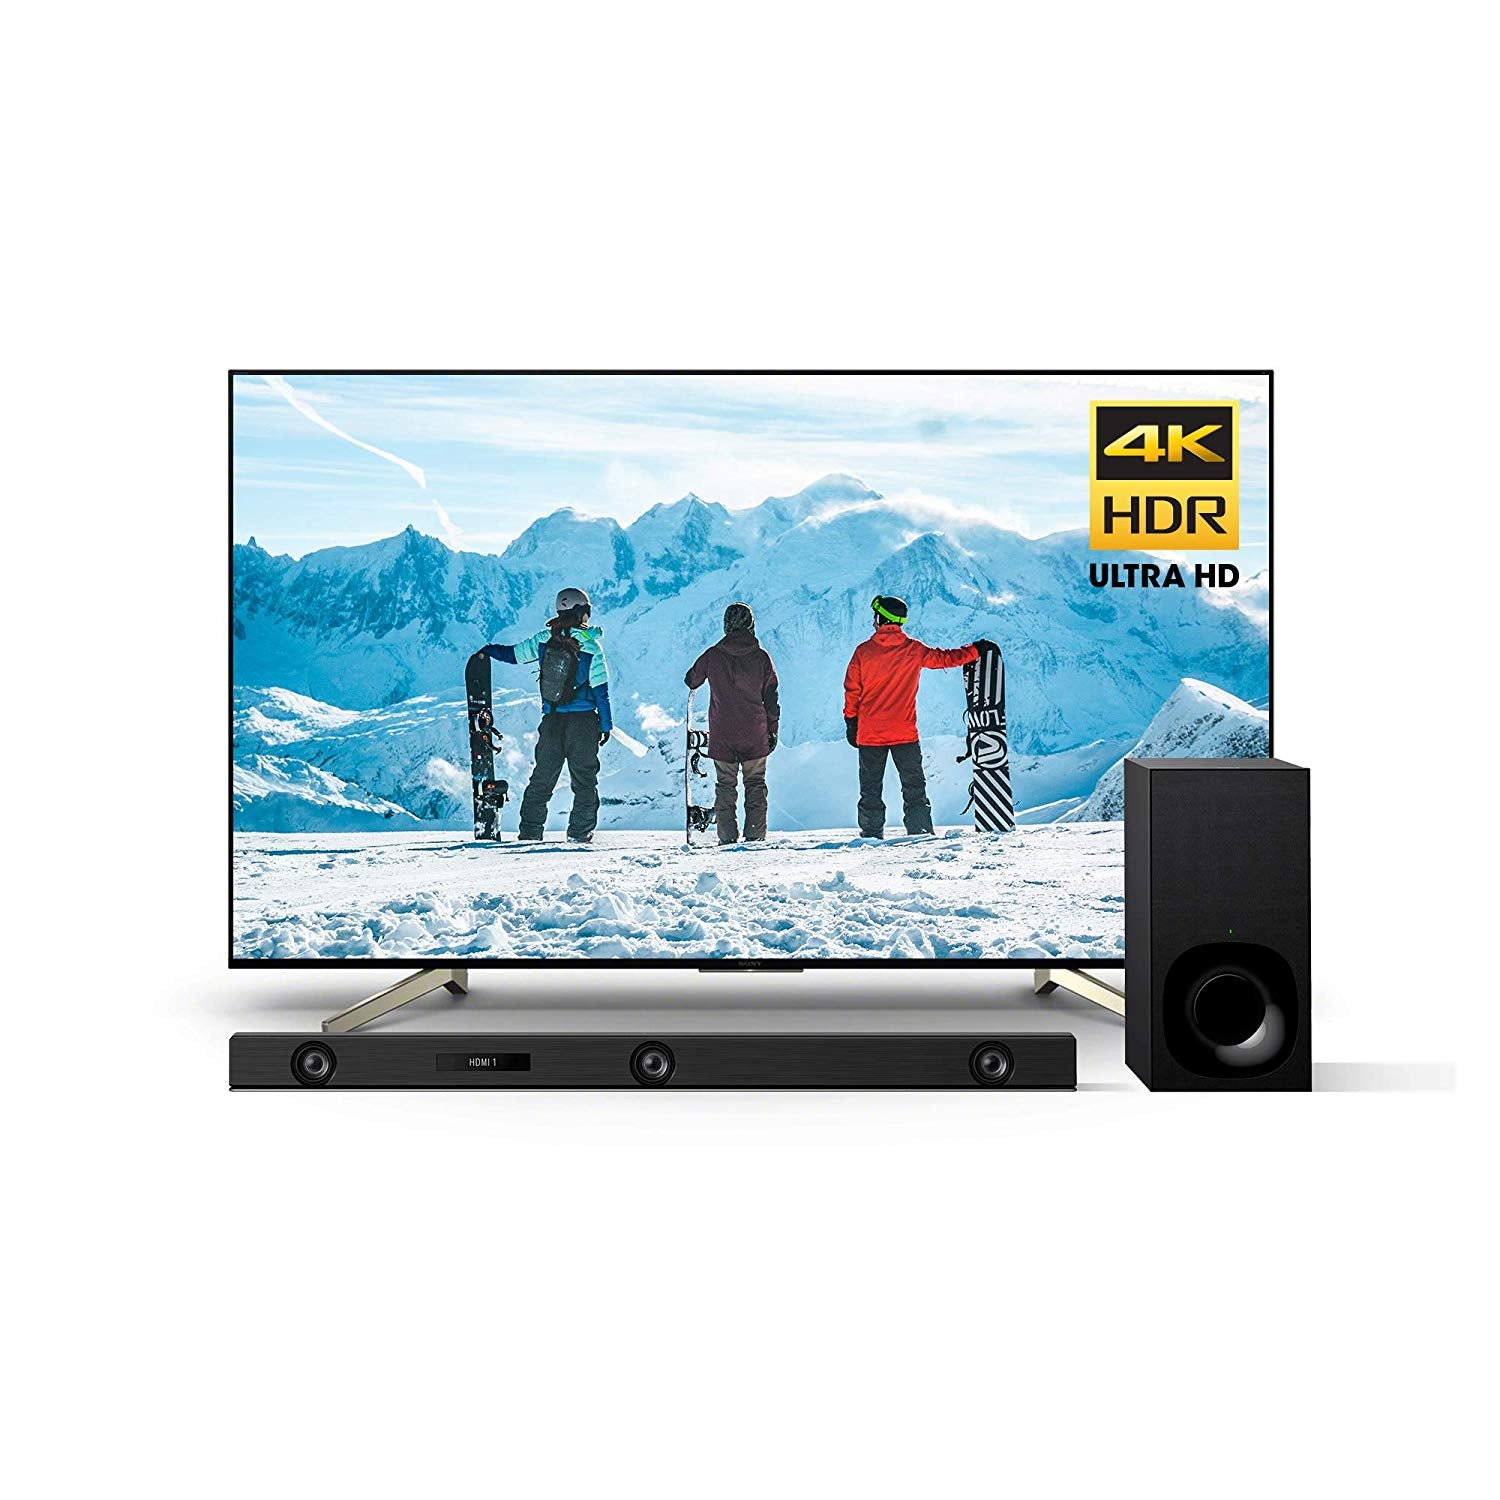 Sony XBR75X850F 75-Inch 4K Ultra HD Smart LED TV (2018 Model)